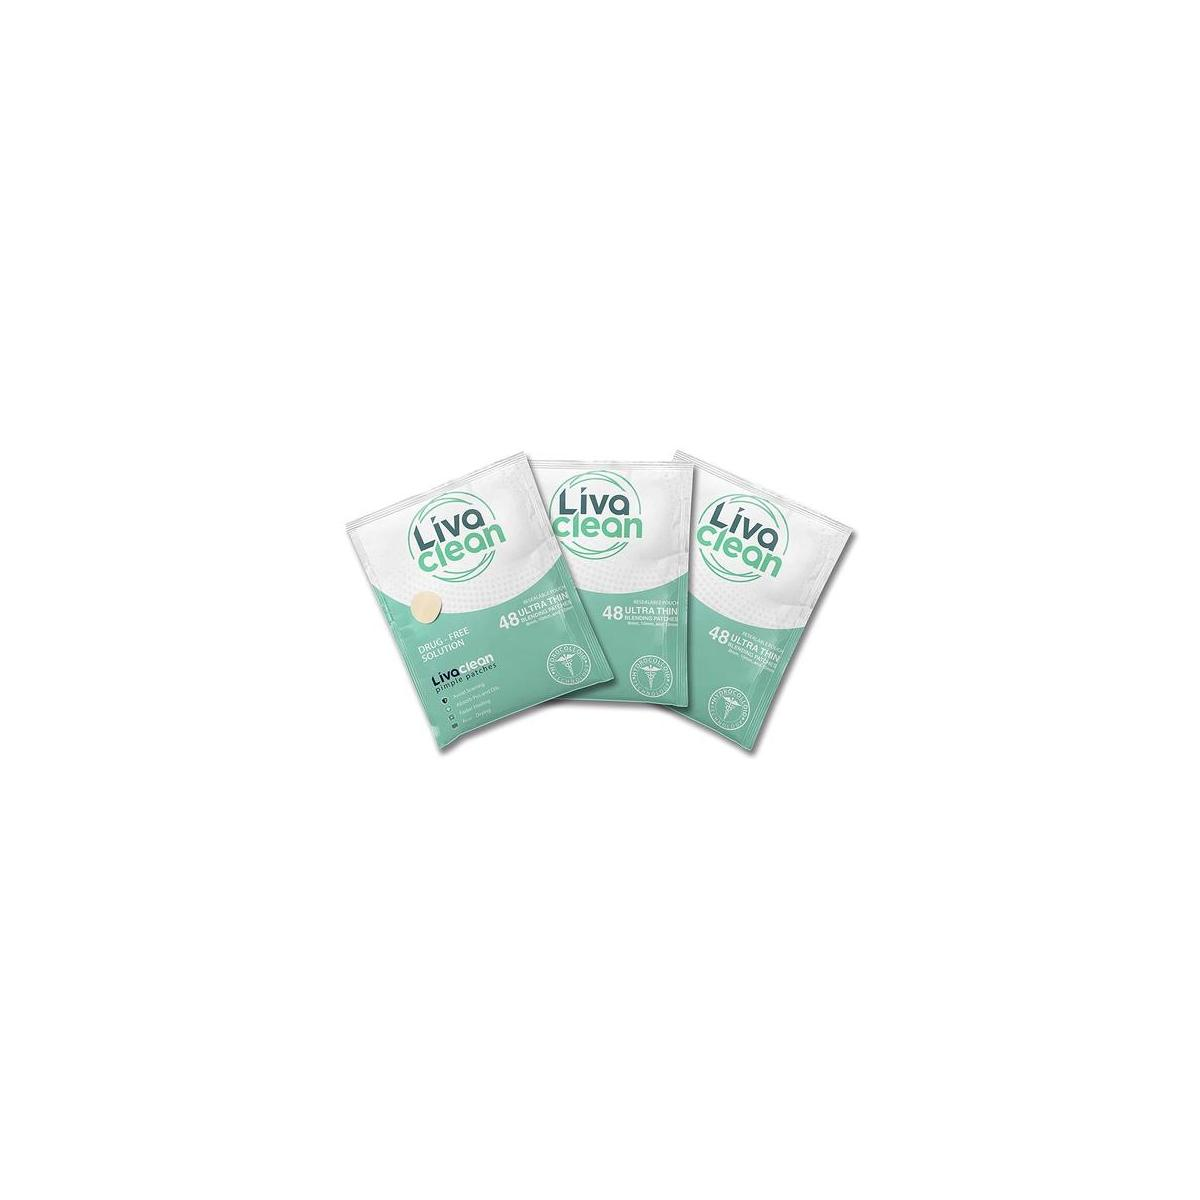 3 Pack of Acne Patchs (Walmart)